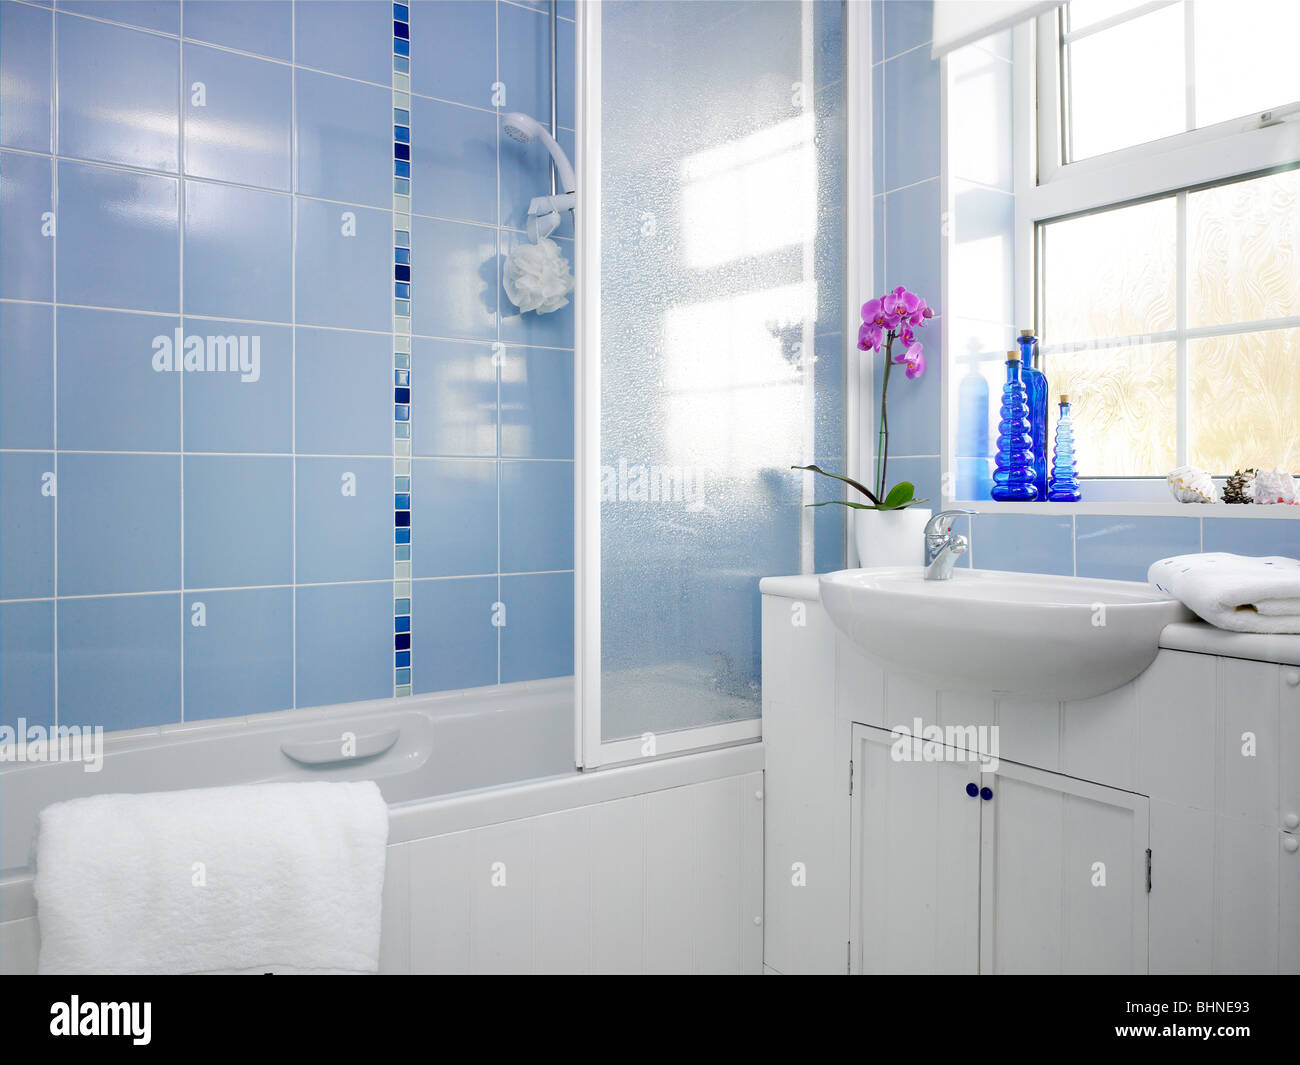 Small Window Bathroom Stock Photos & Small Window Bathroom Stock ...